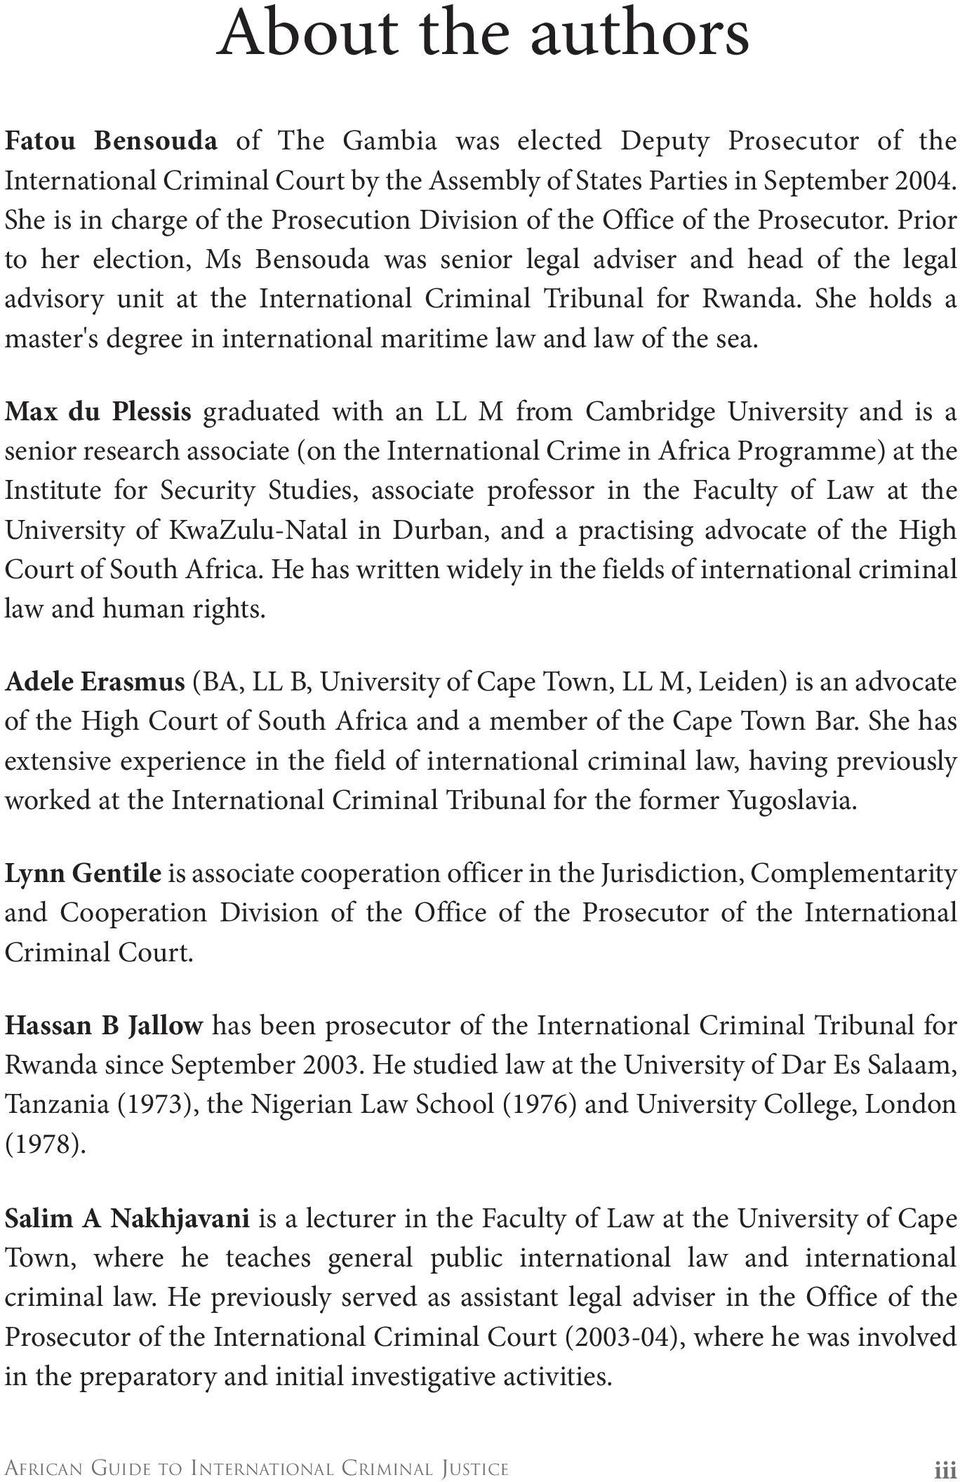 Prior to her election, Ms Bensouda was senior legal adviser and head of the legal advisory unit at the International Criminal Tribunal for Rwanda.